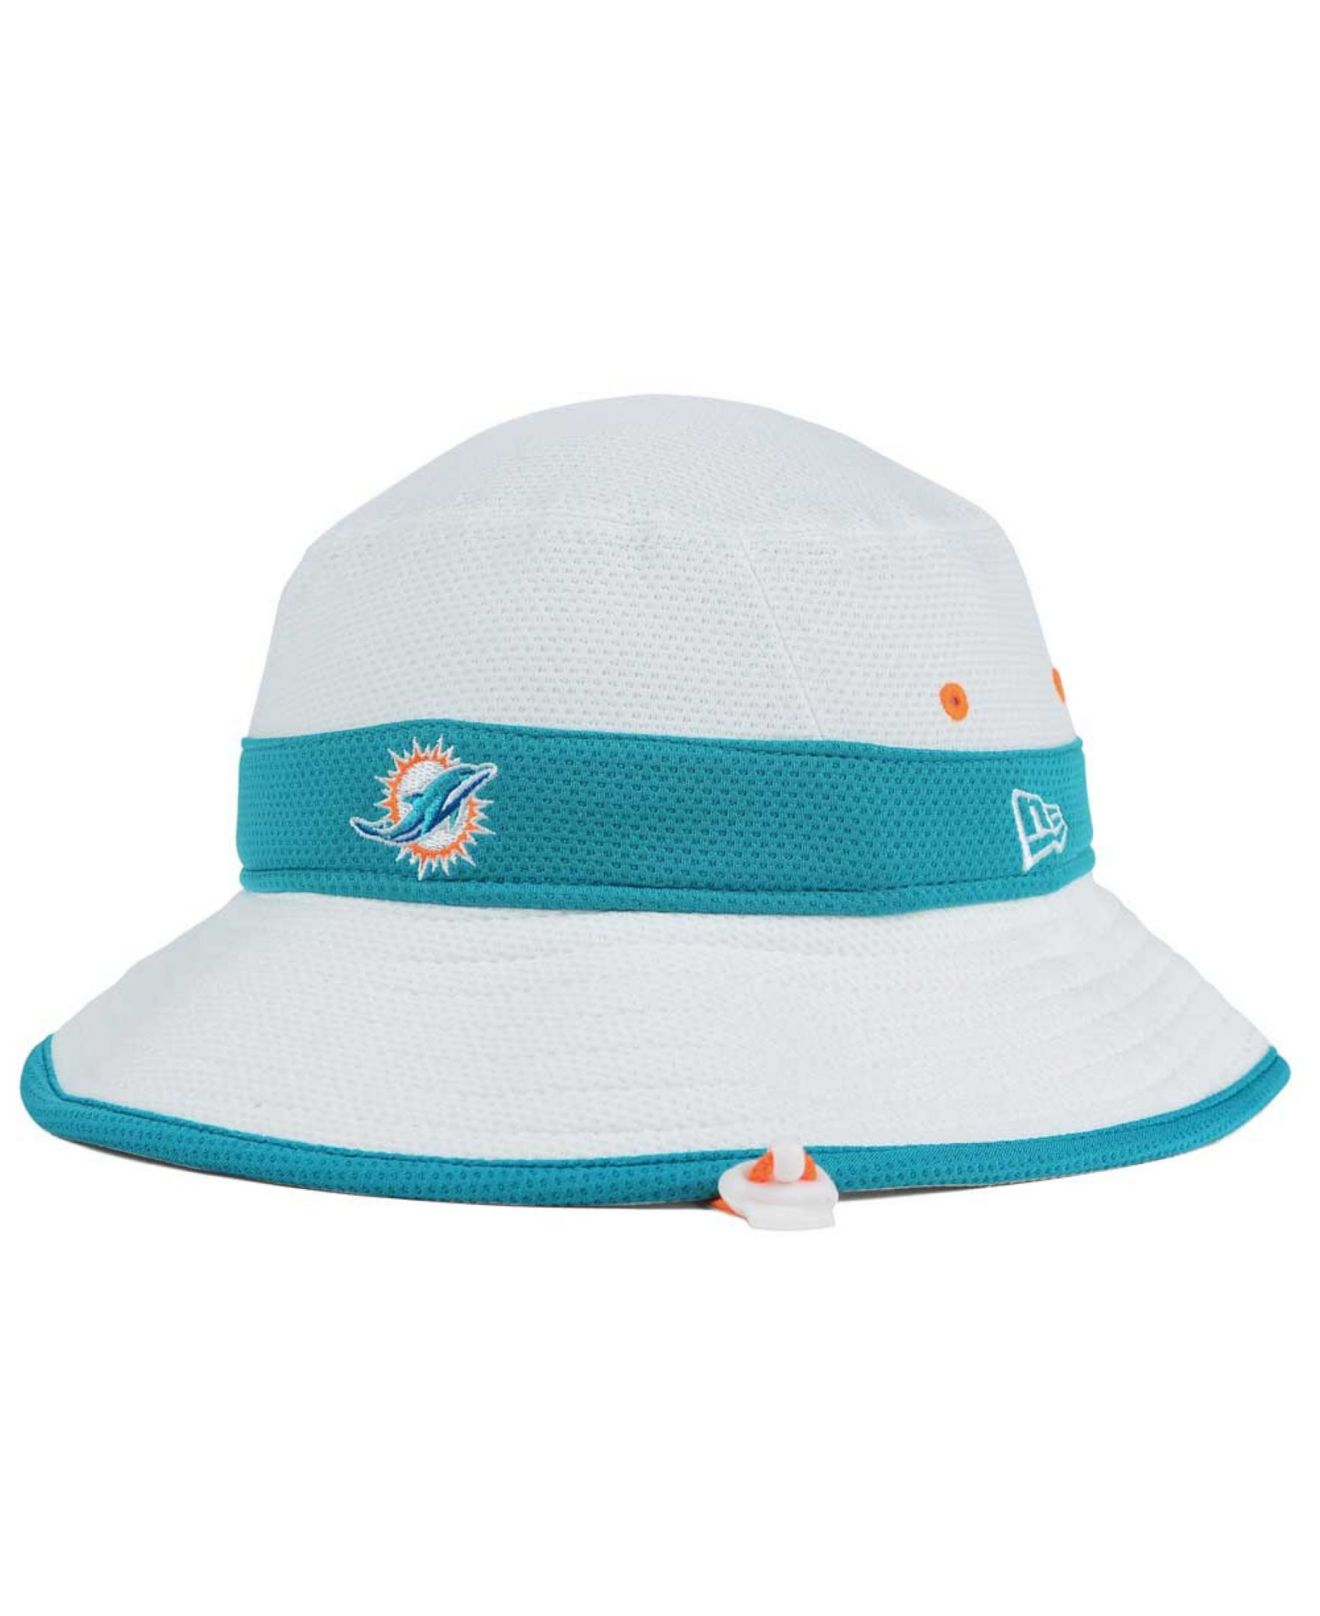 ead449a62 Lyst - KTZ Miami Dolphins Training Camp Official Bucket Hat in White ...